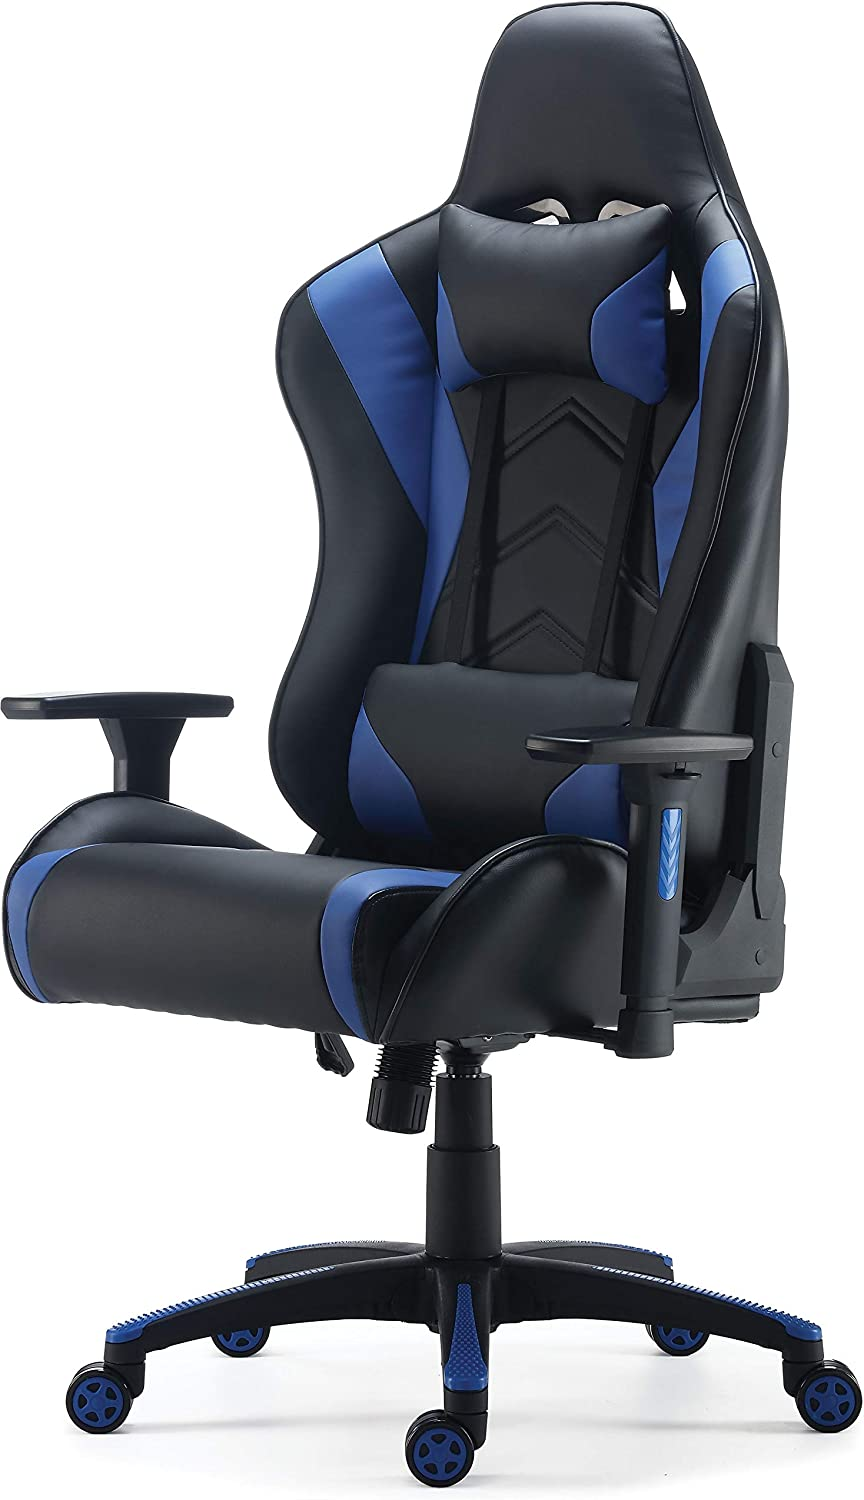 Amazon Com Staples 24326200 Vartan Gaming Chair Blue Furniture Decor Gaming chair staples gaming chair cheap gaming chair best gaming chair i got a new office chair, this is a gaming style chair from staples. staples 24326200 vartan gaming chair